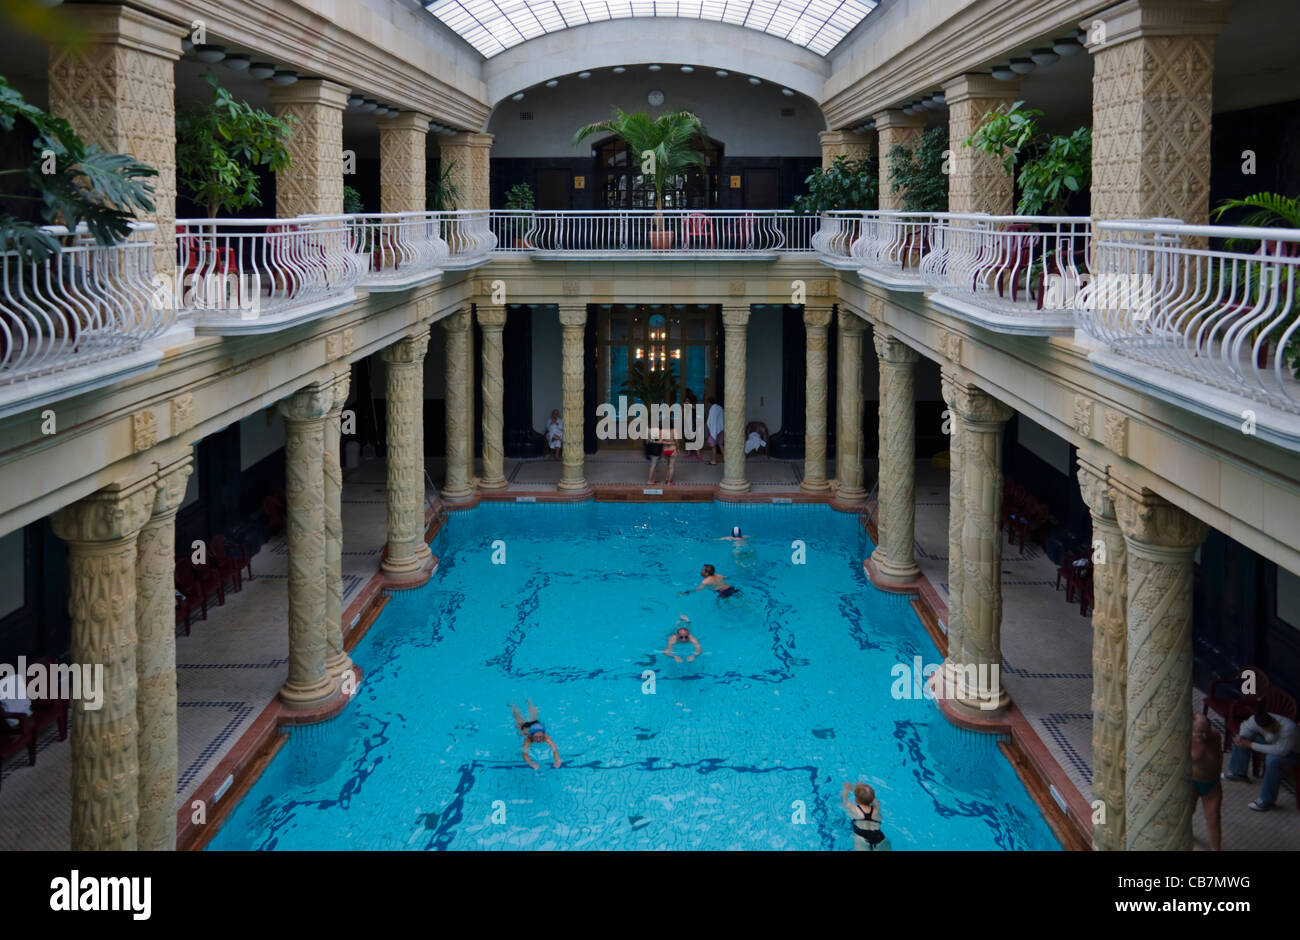 Gellert Bath Stock Photos & Gellert Bath Stock Images - Alamy